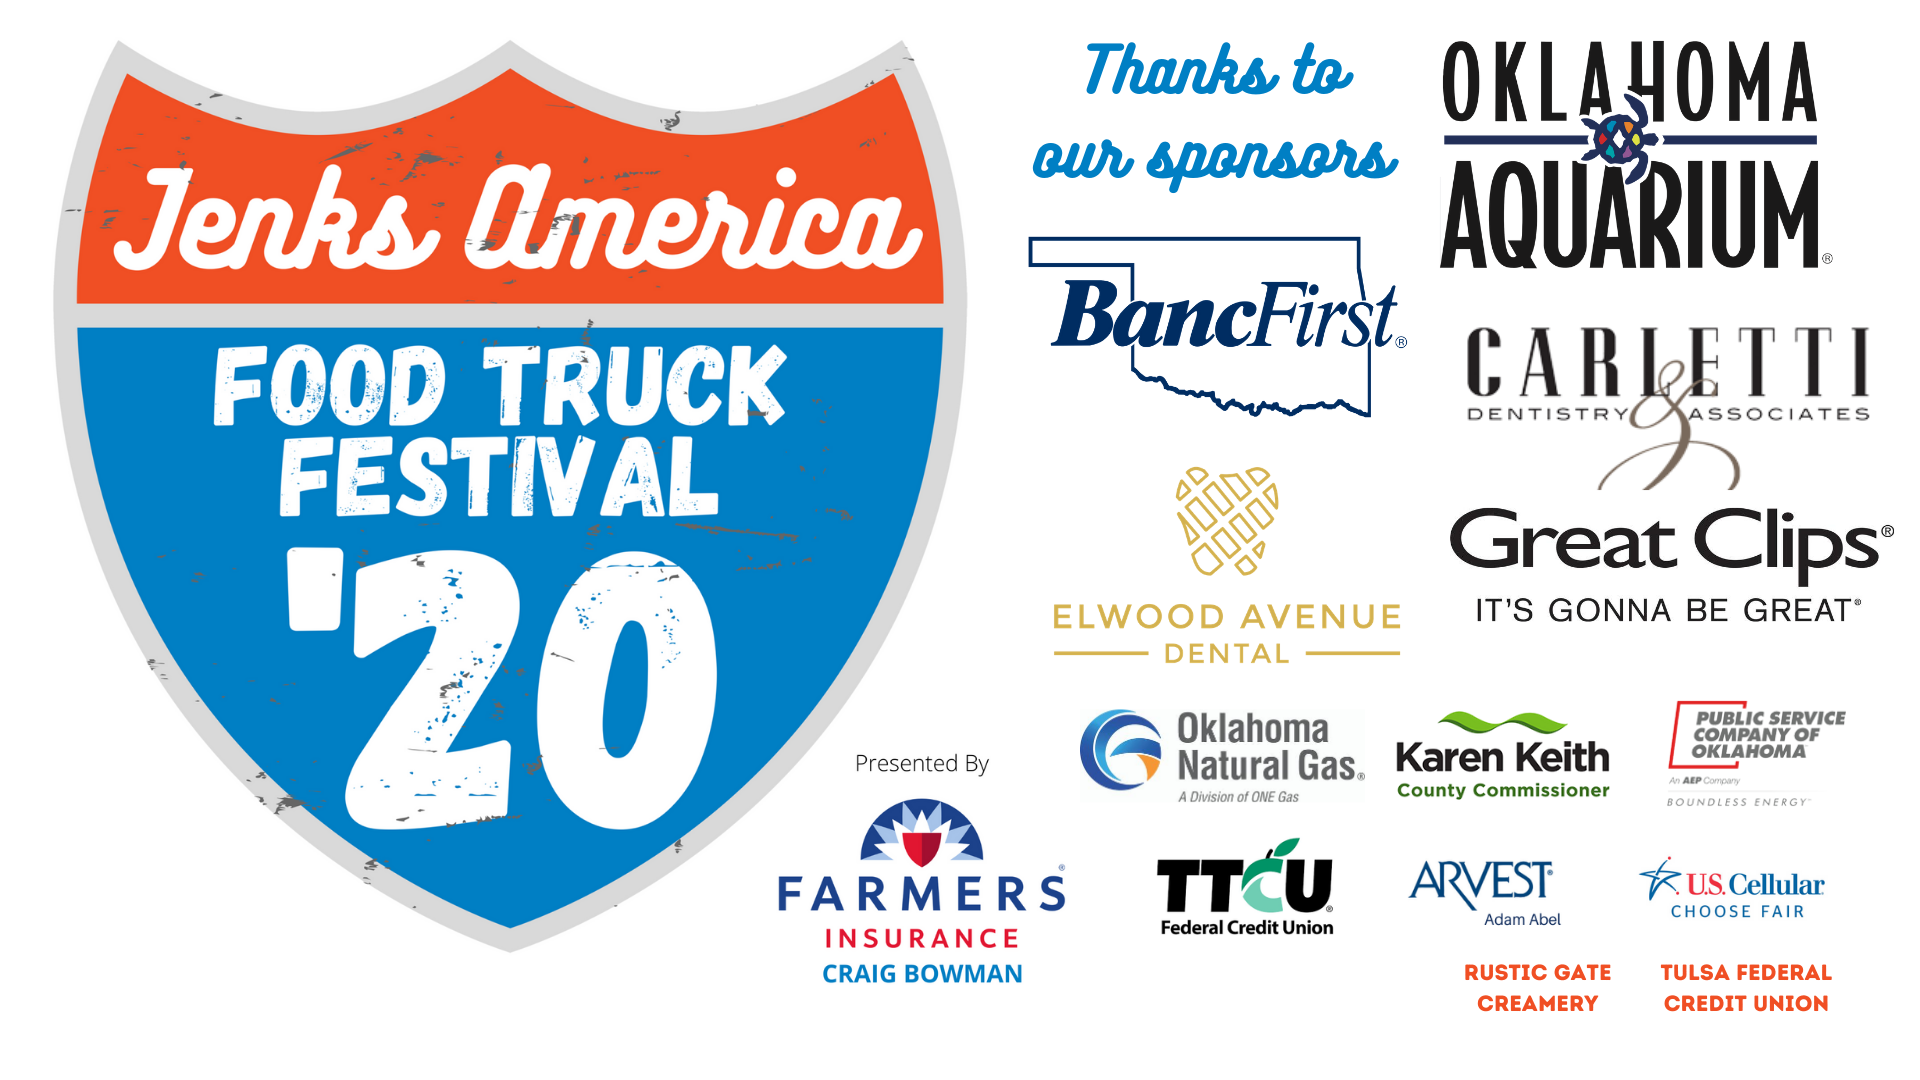 A logo for the Jenks America Food Truck Festival